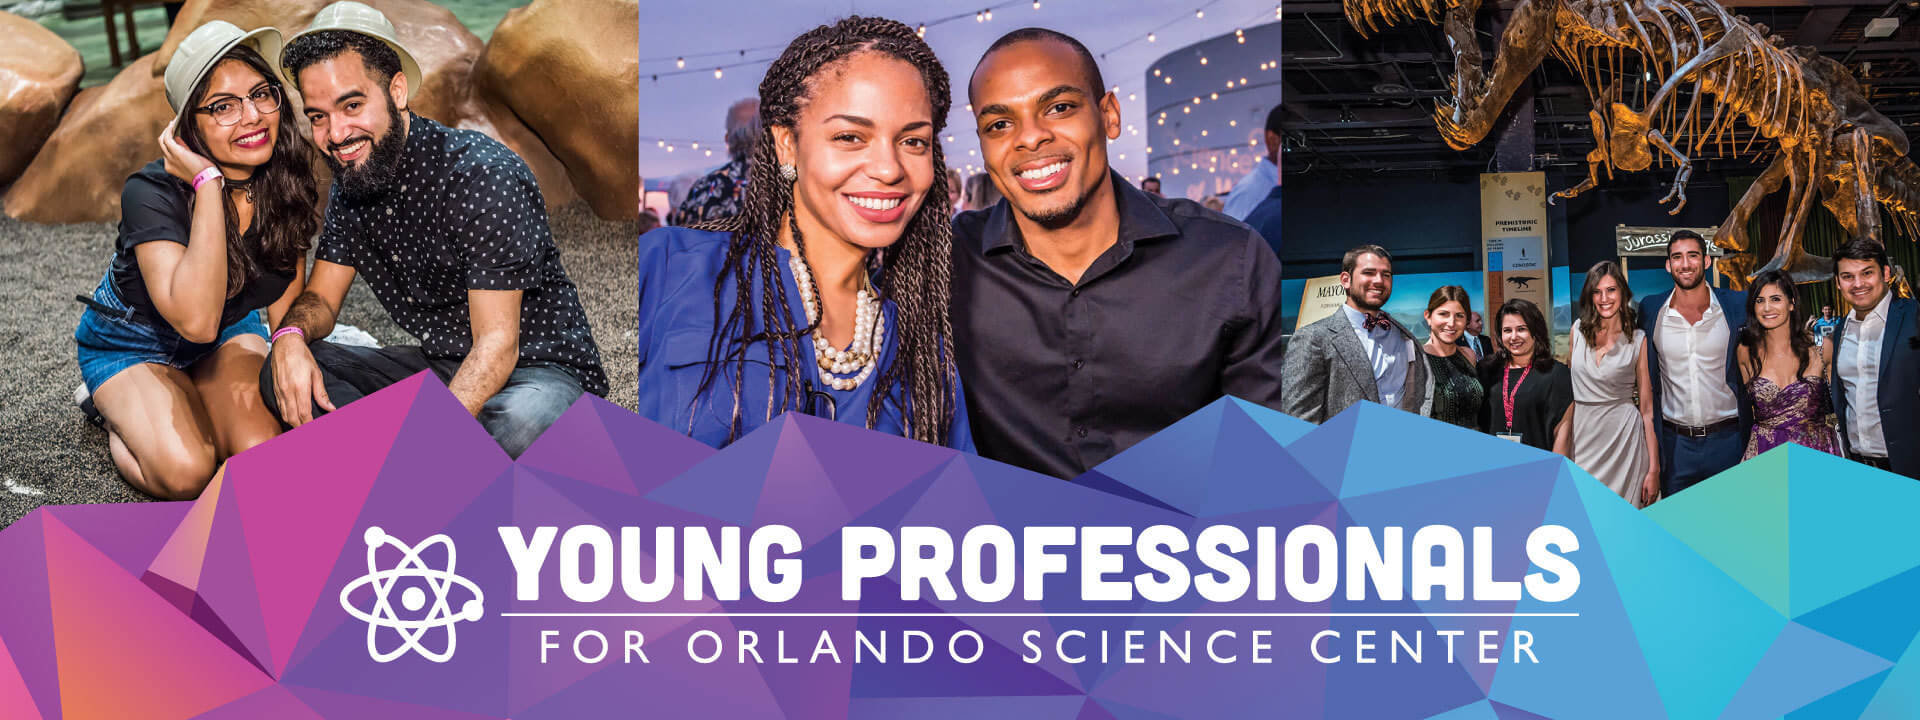 Collage of photos of young adults enjoying Orlando Science Center experiences through Young Professionals for OSC events.